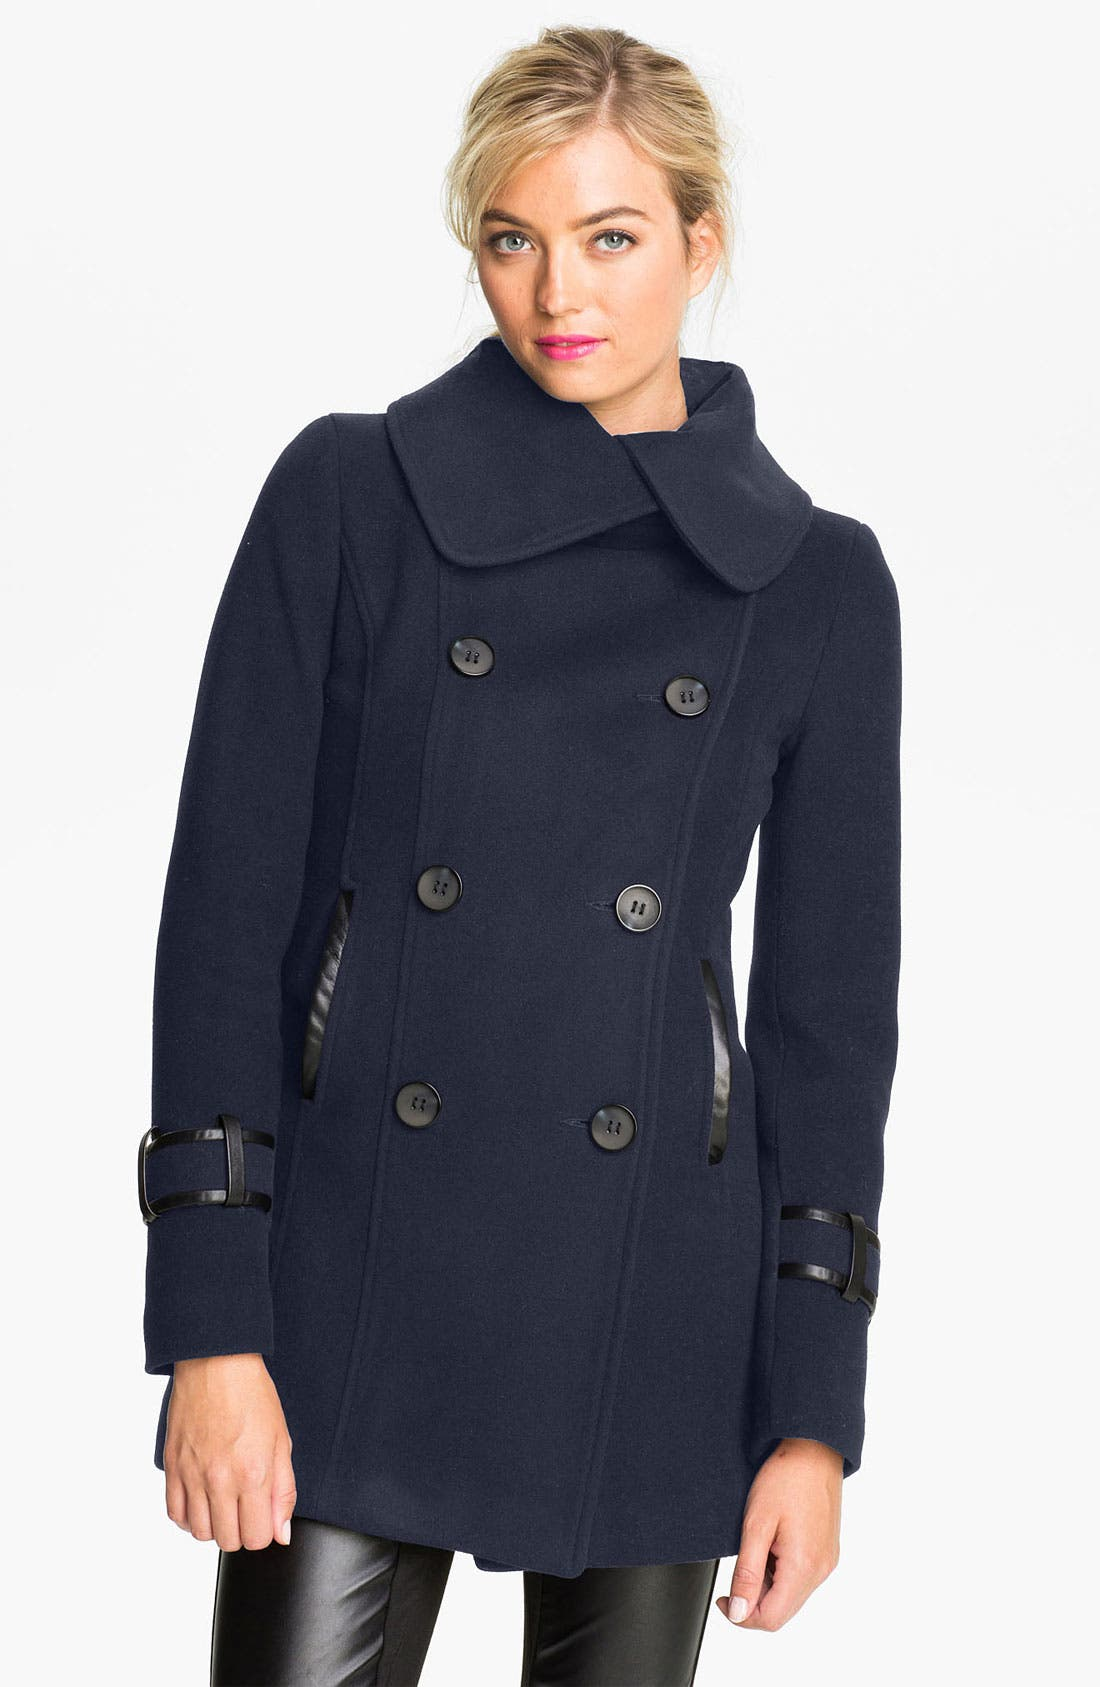 Alternate Image 1 Selected - Mackage 'Zyta' Peacoat (Petite)